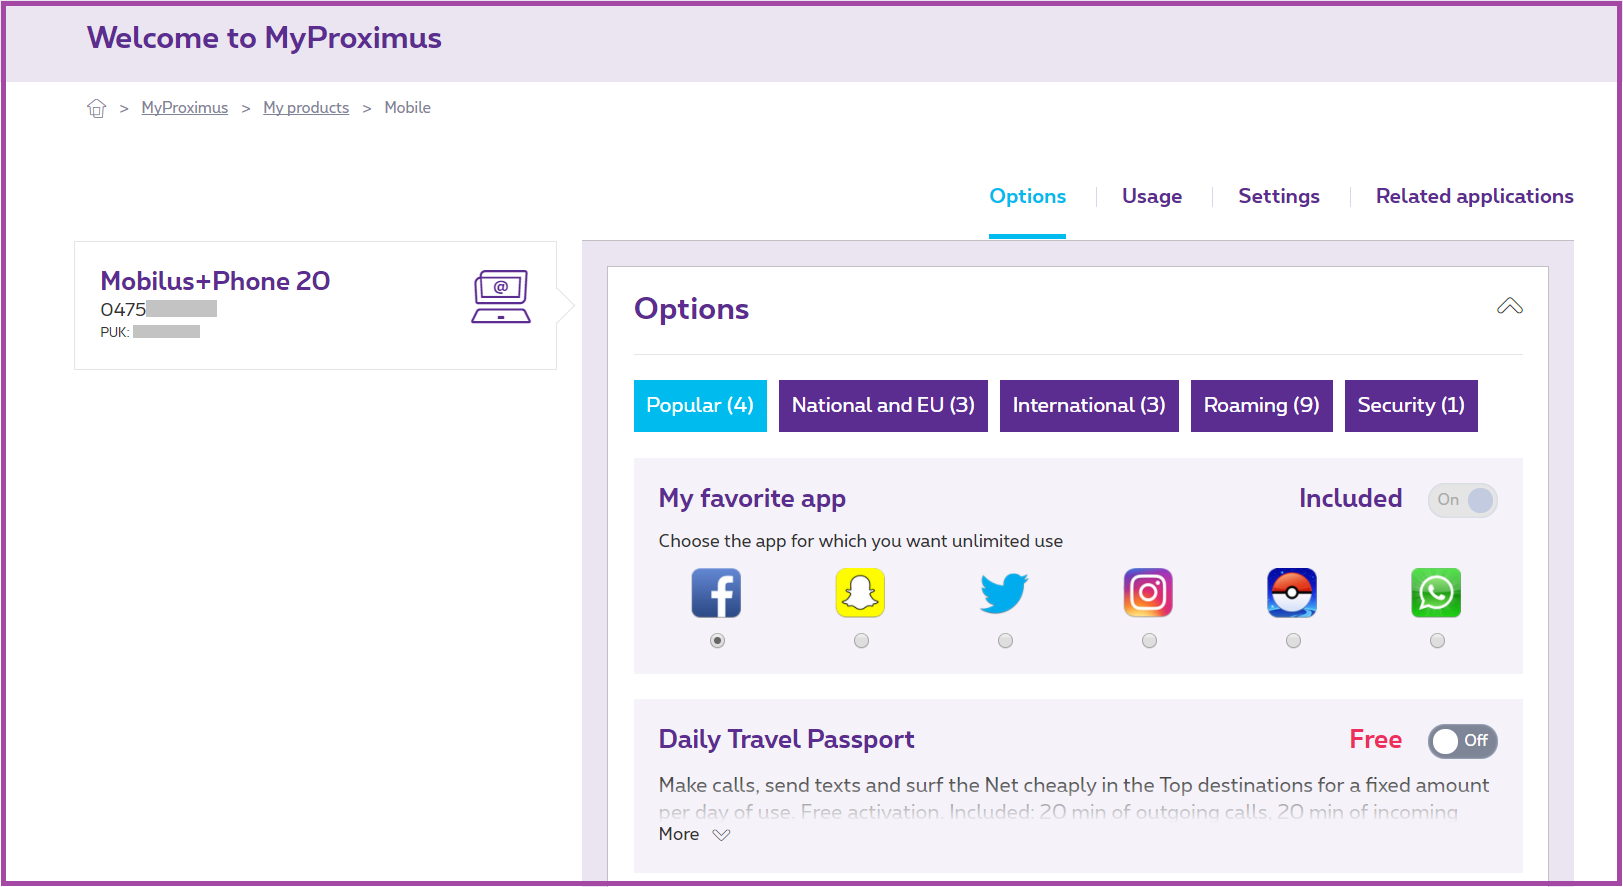 Example of what a user sees in MyProximus